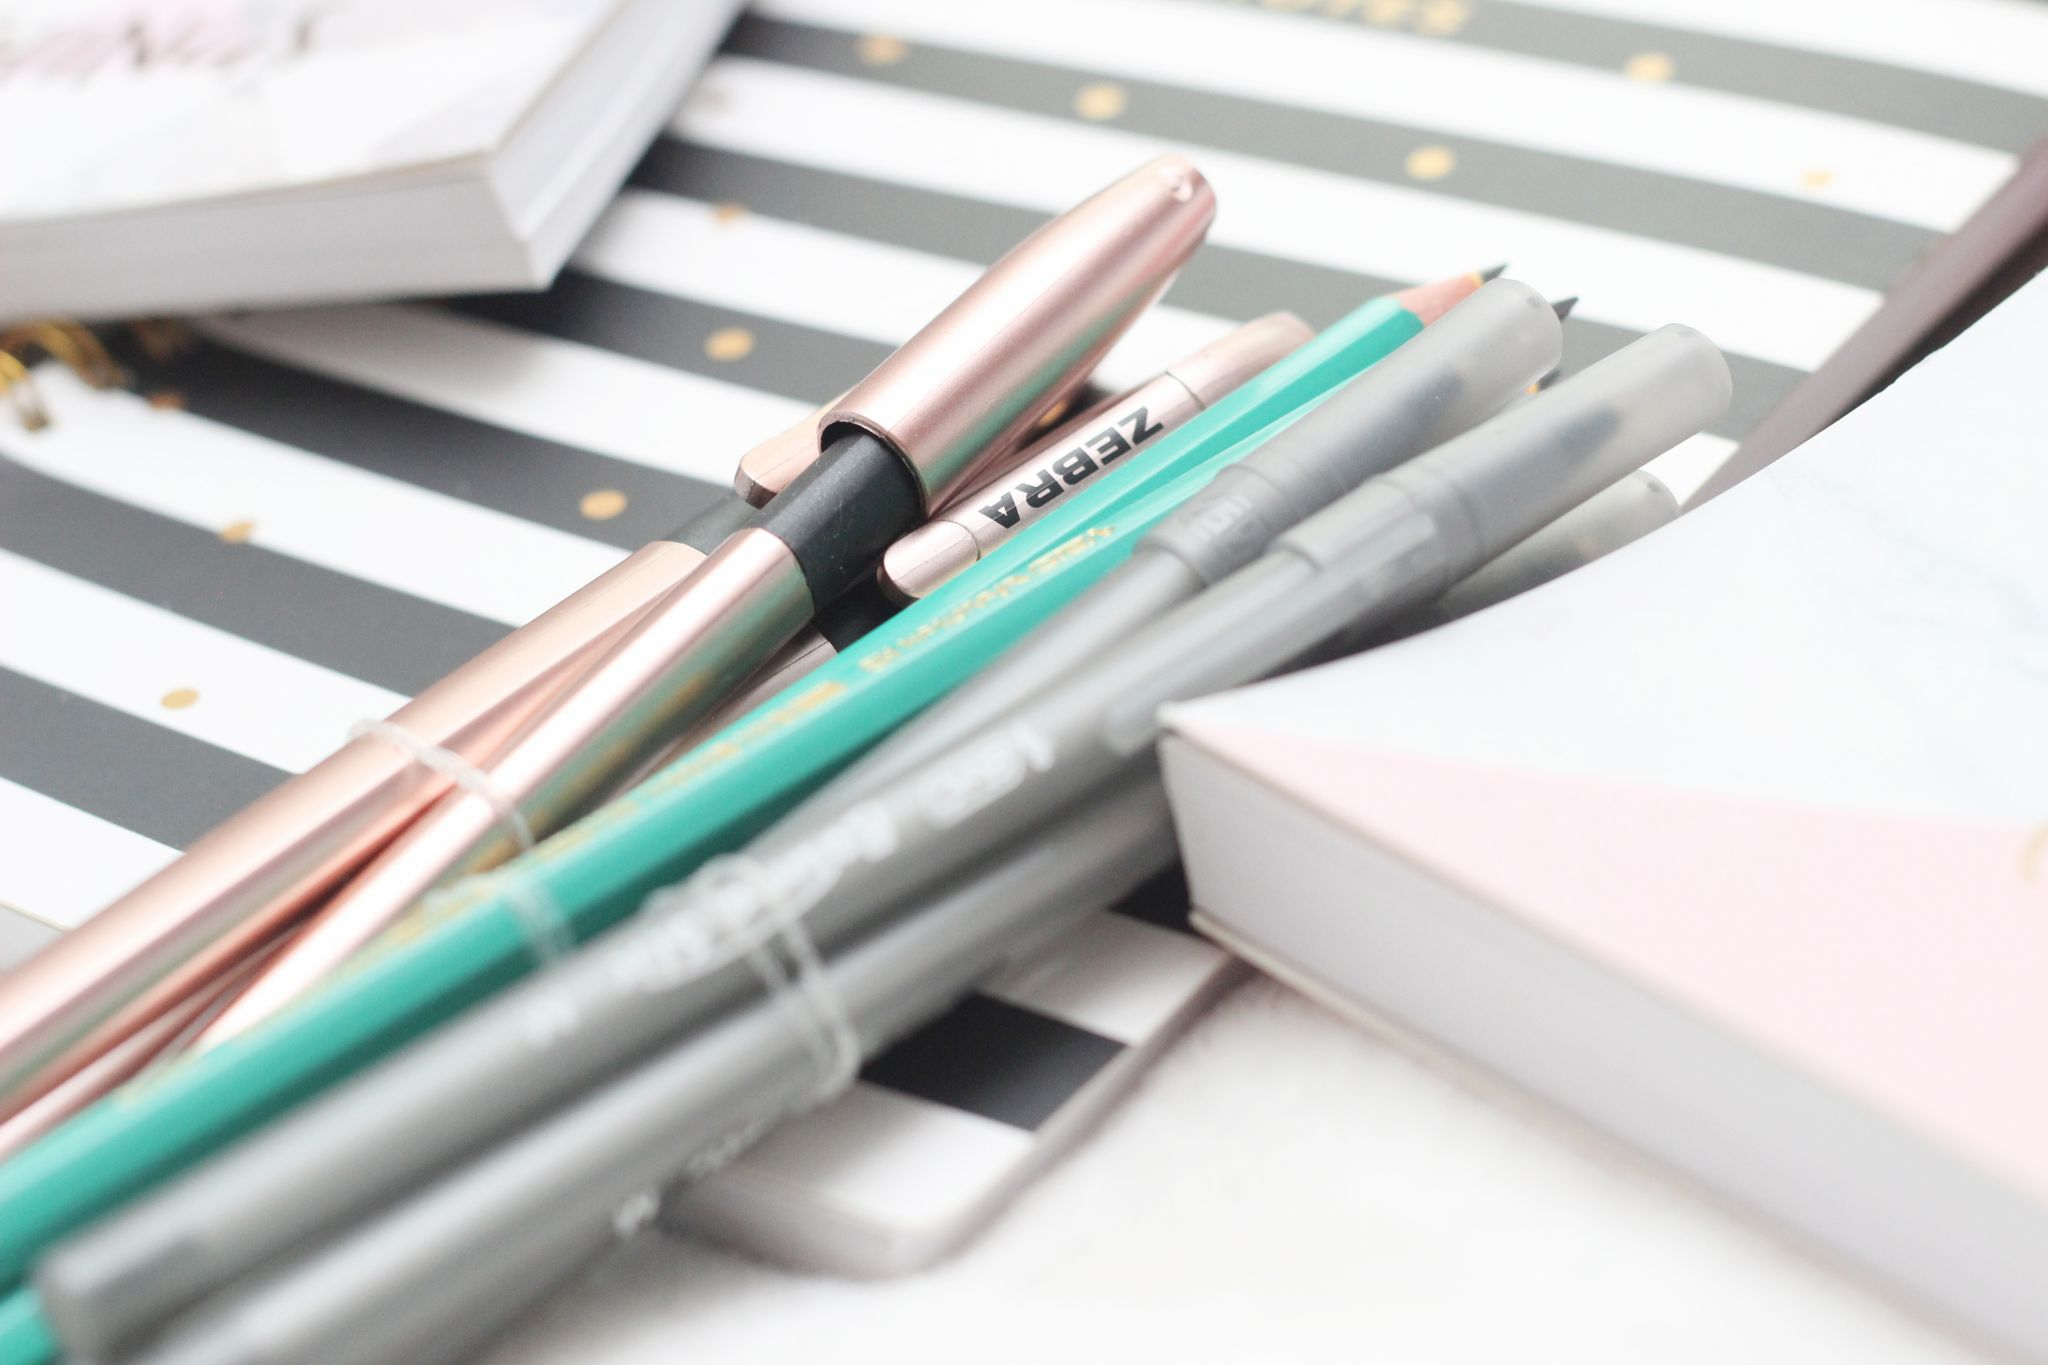 first year stationery pens and pencils